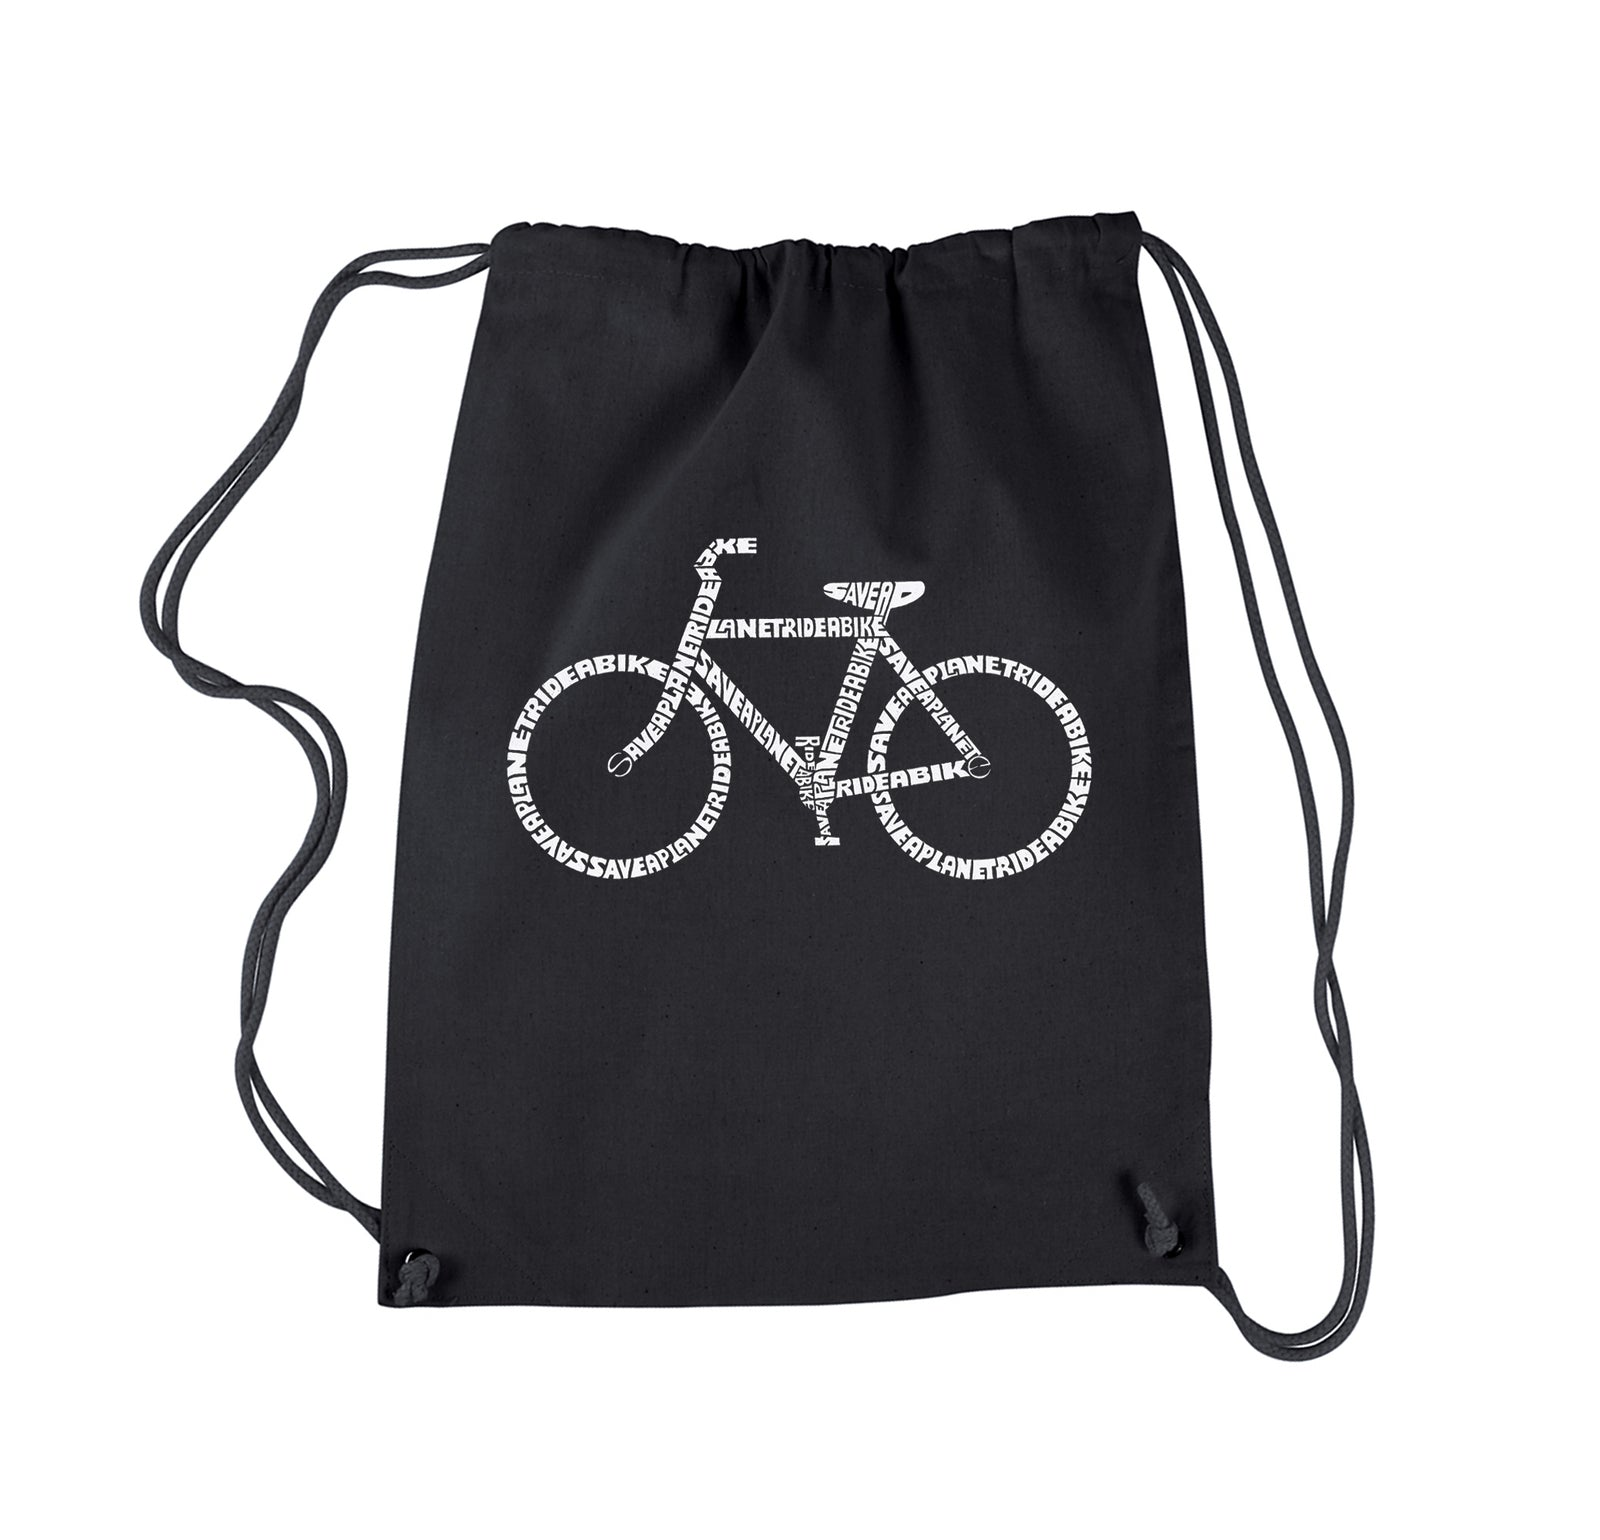 Drawstring Backpack - SAVE A PLANET, RIDE A BIKE